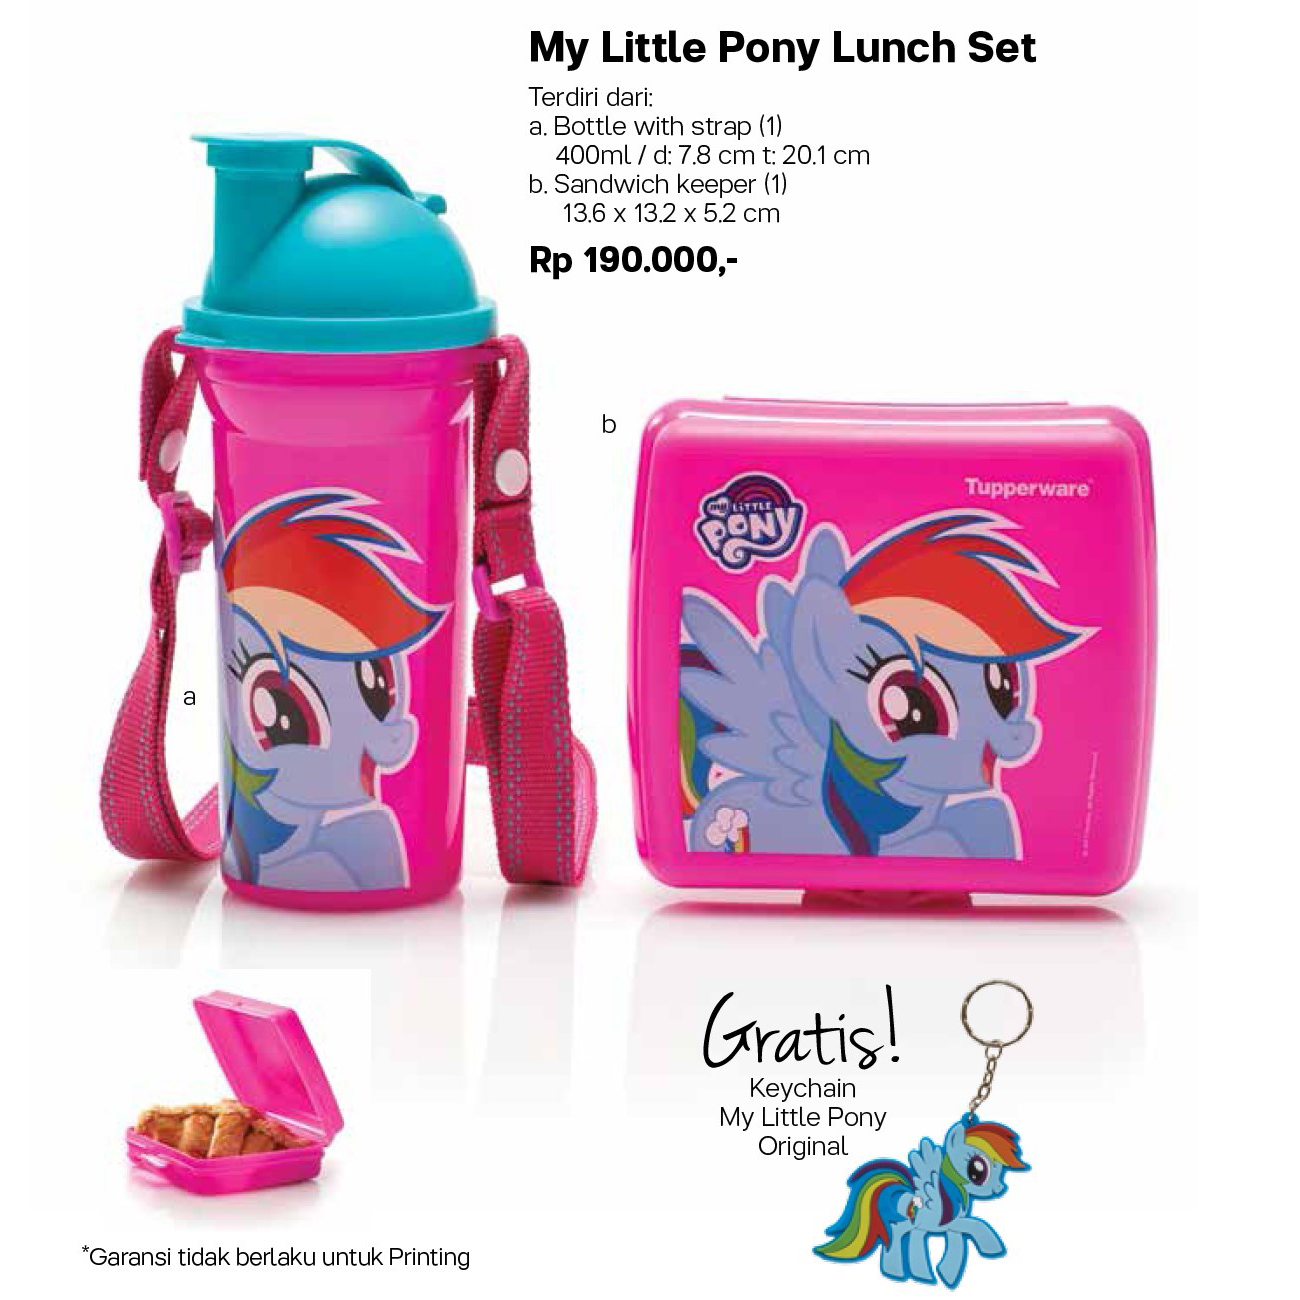 My LittlePony Lunch Set Tupperware